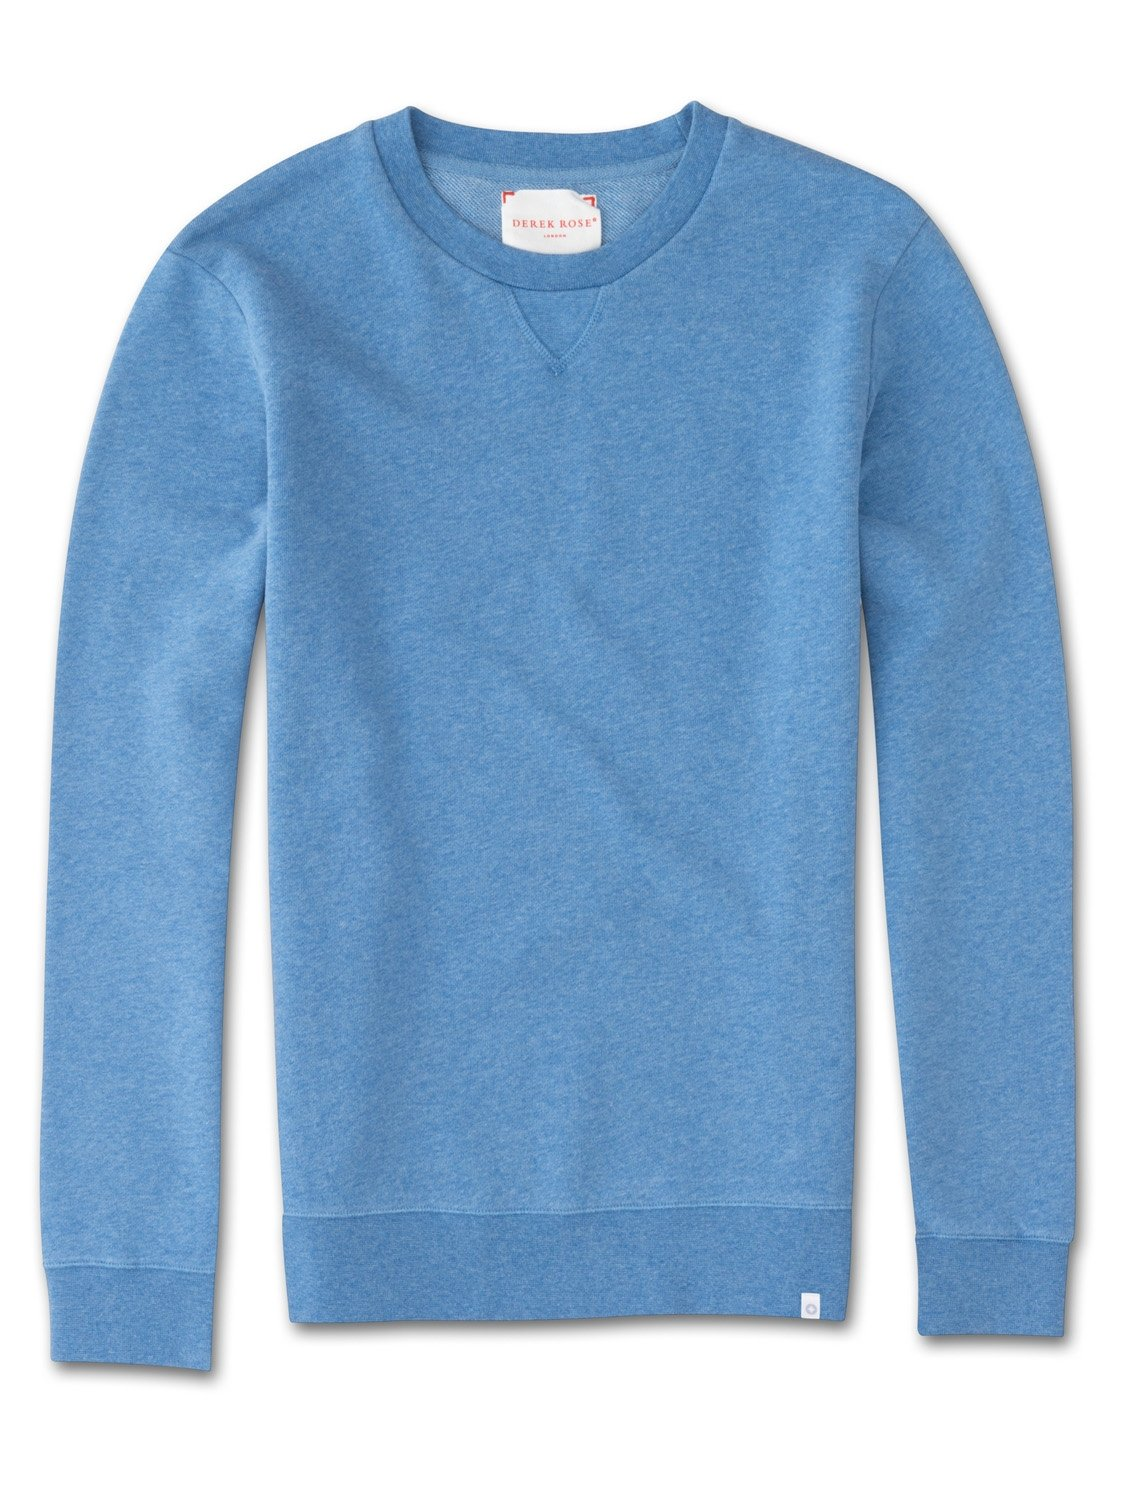 Men's Sweatshirt Devon 2 Loopback Cotton Blue